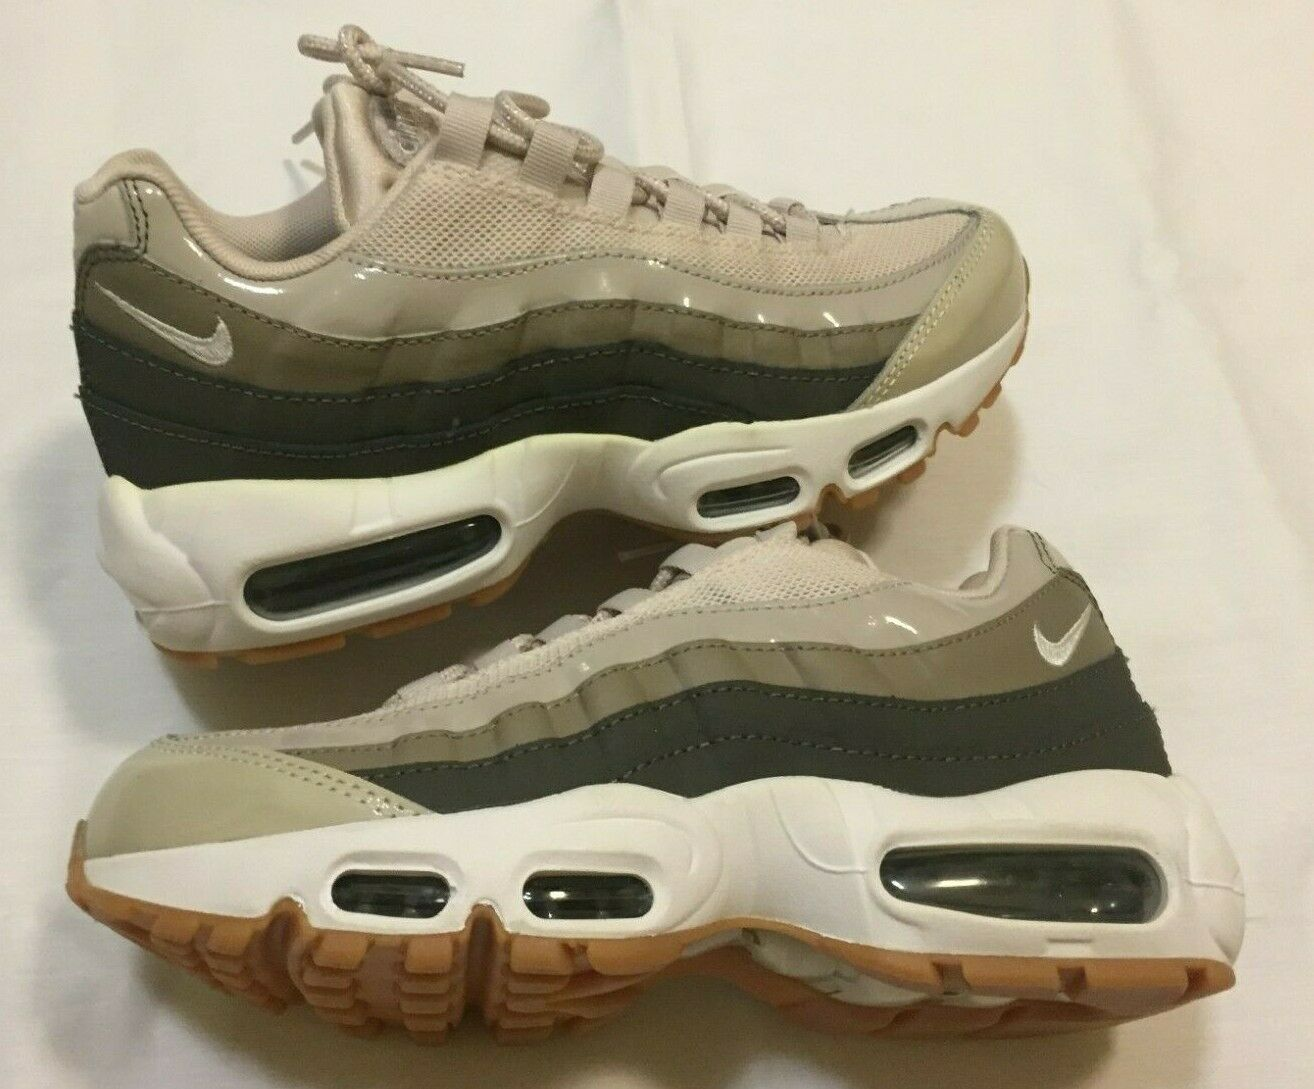 NEW WOMENS NIKE AIR MAX 95 DESERT SAND RUNNING SHOES 307960-011 SIZE 7  MENS 5.5